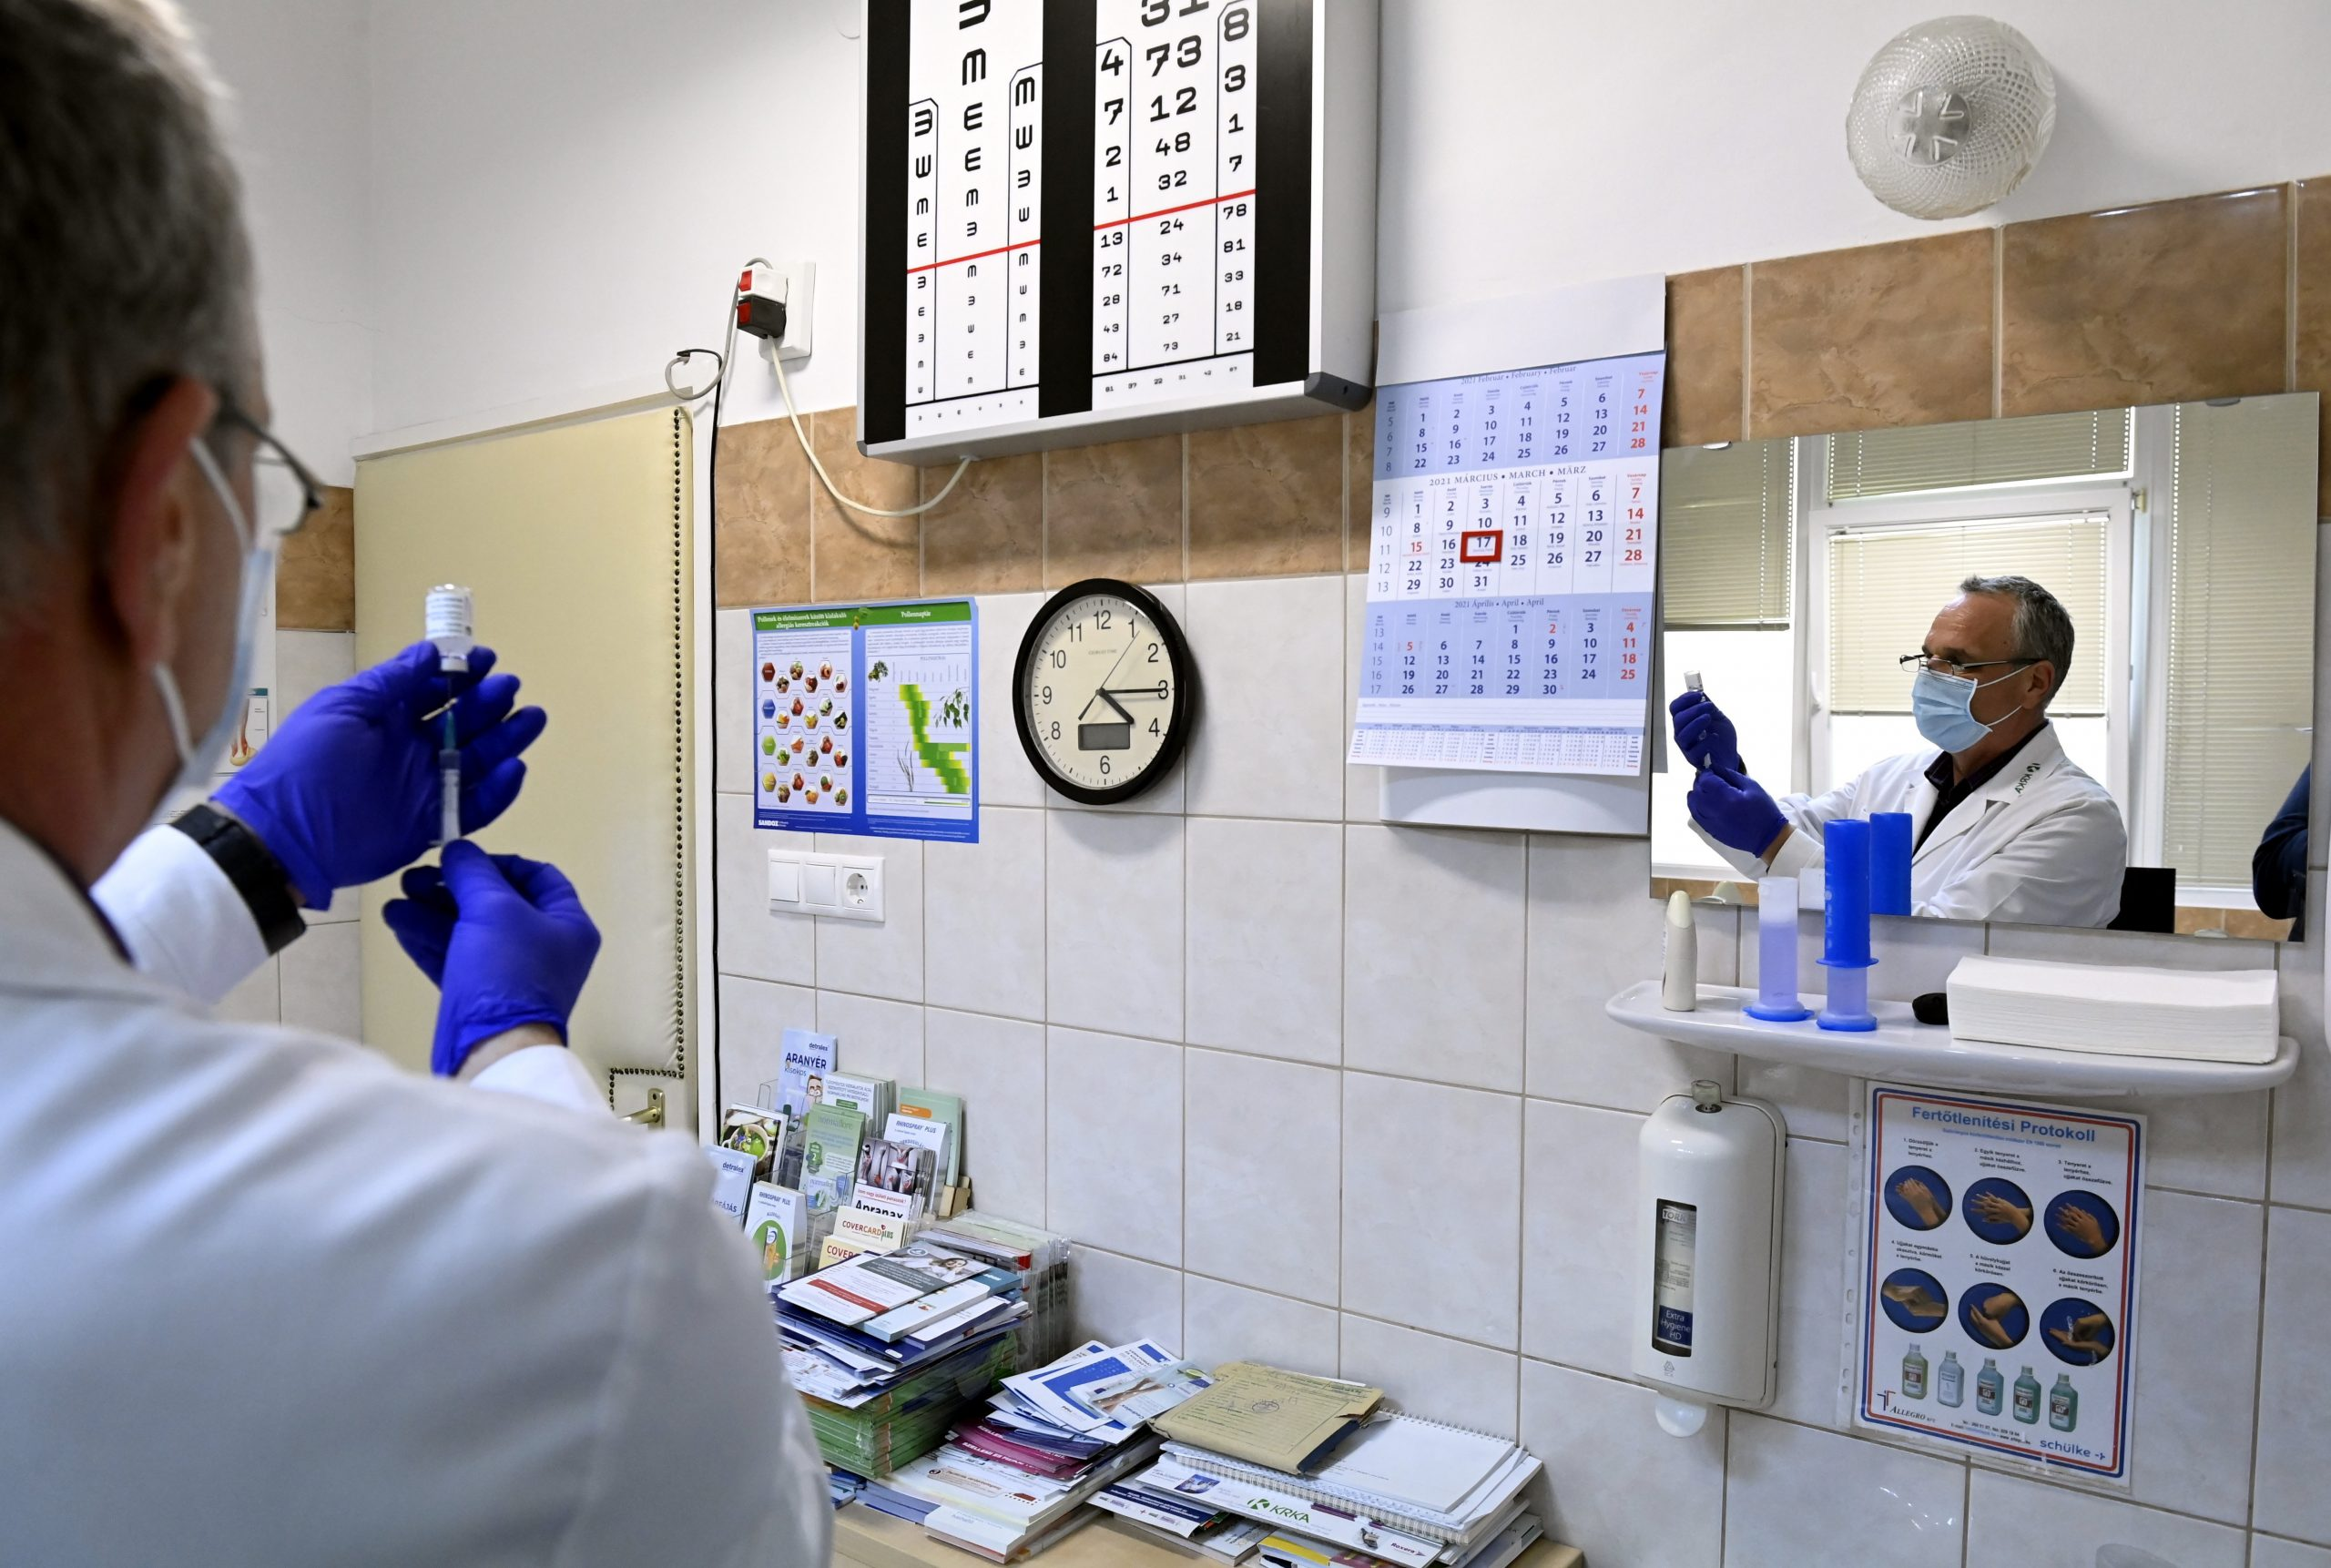 Reopening in Three Weeks Unlikely if Vaccination Rate Doesn't Increase